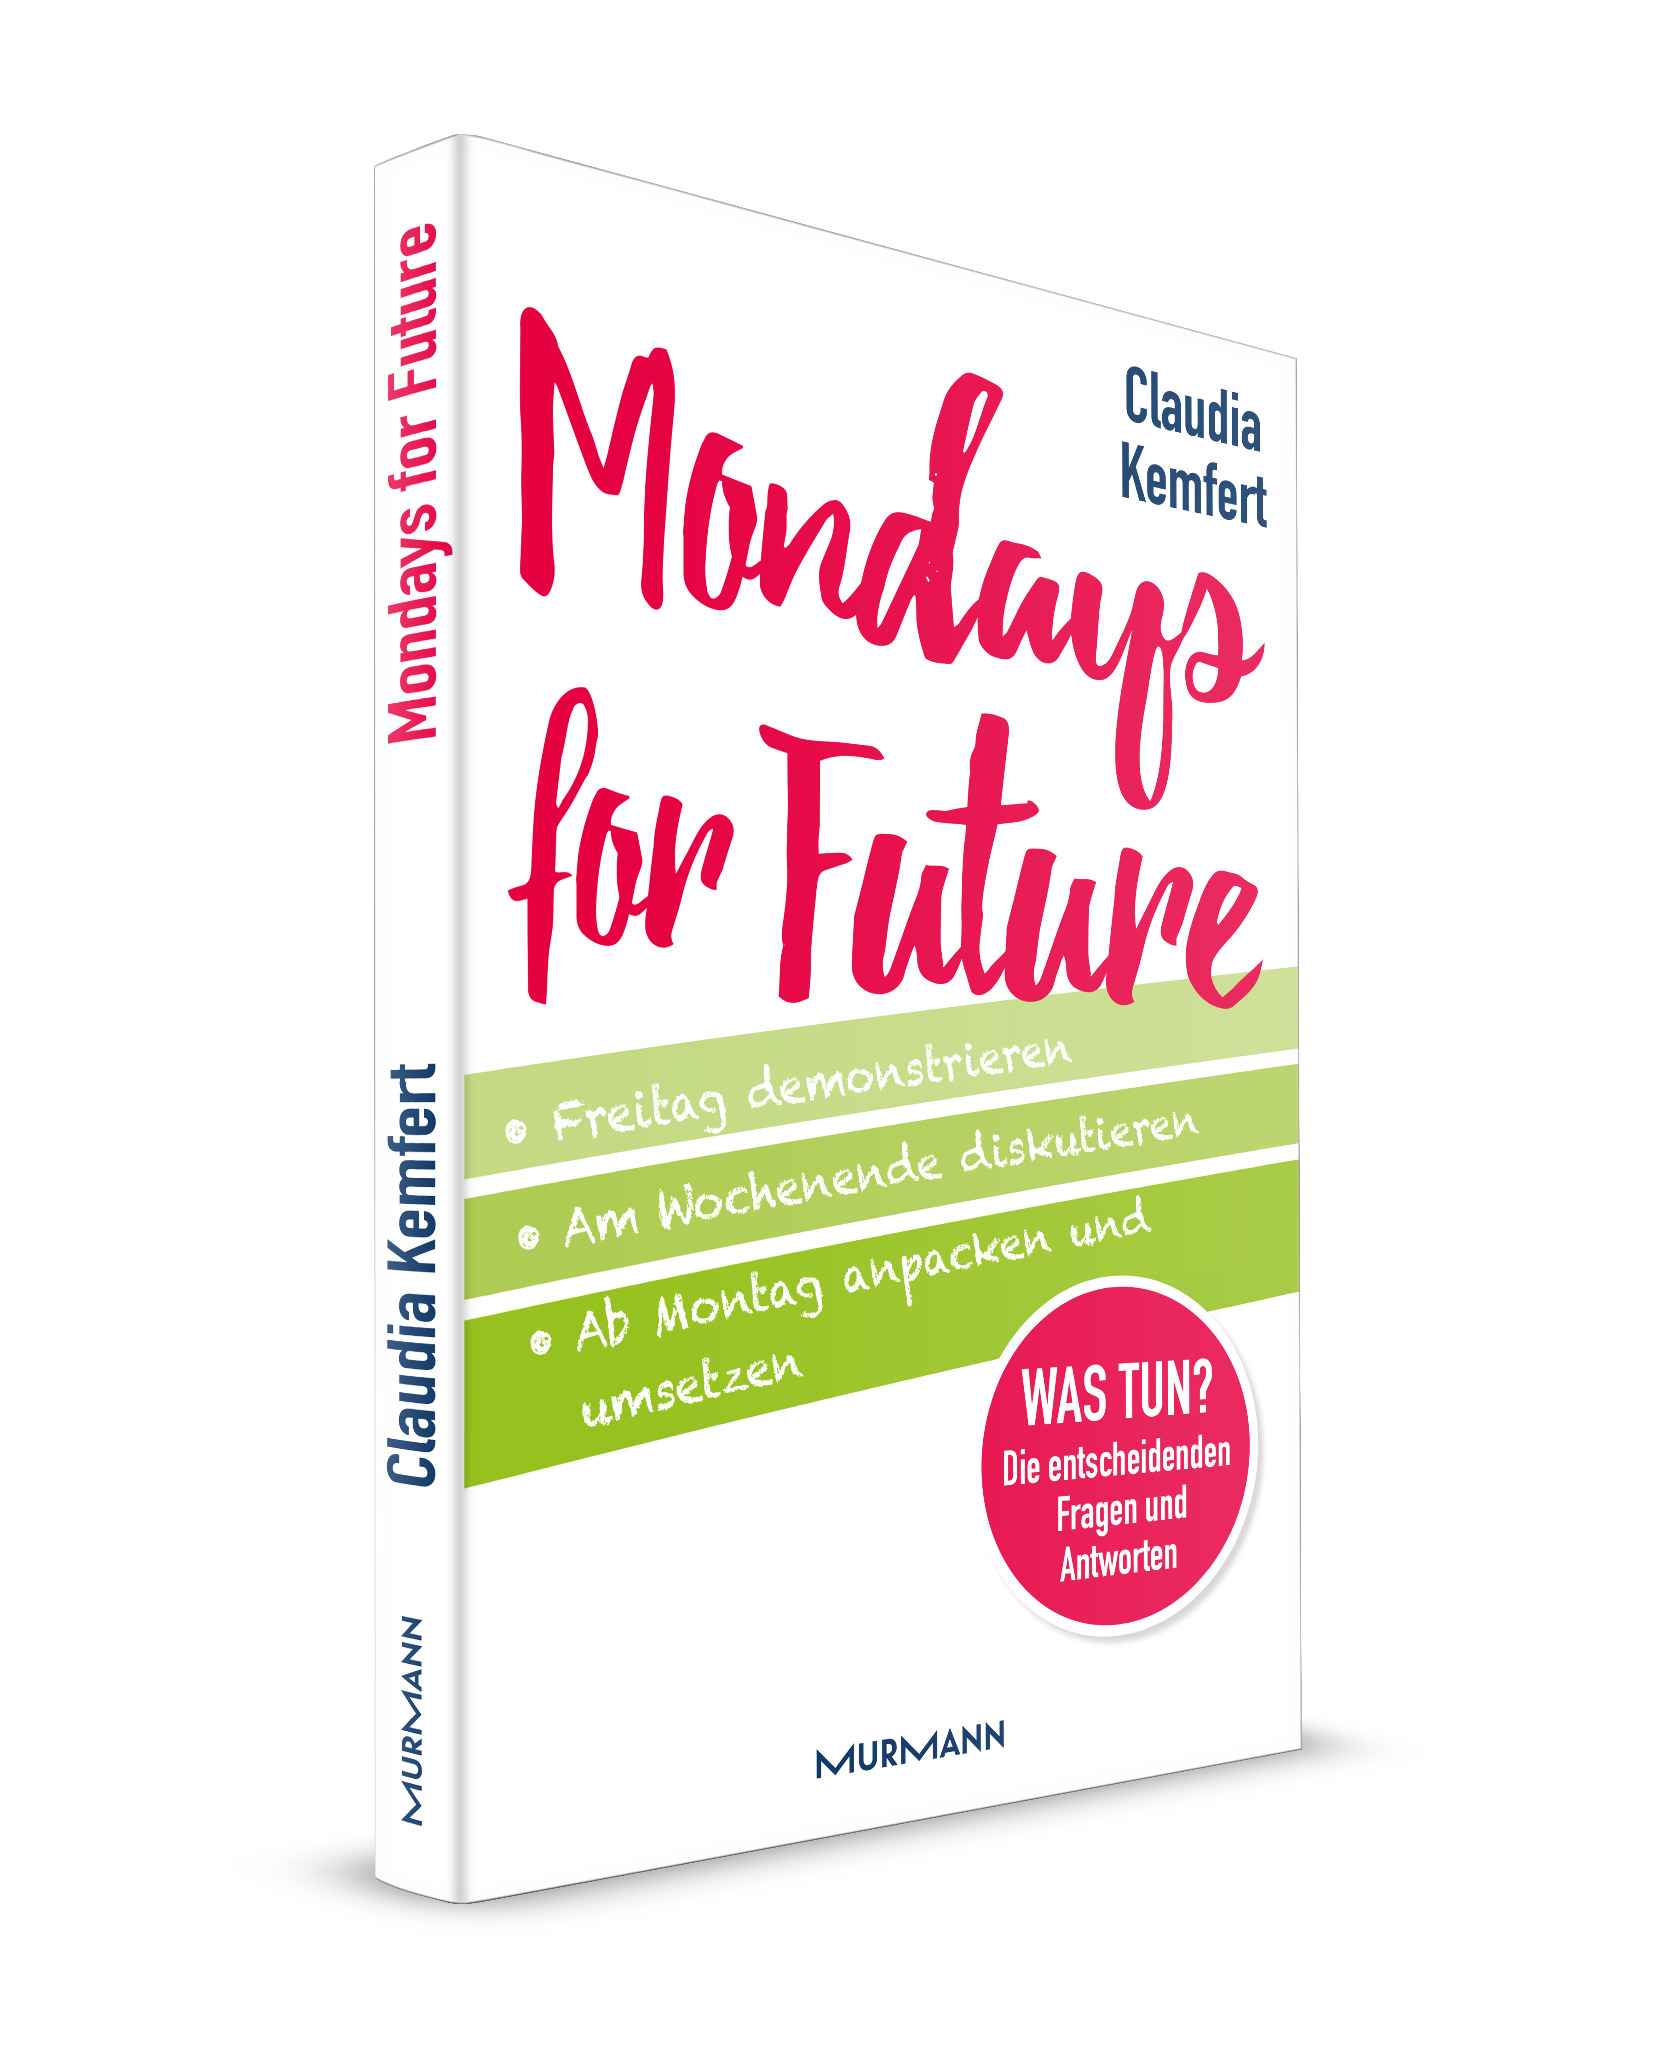 *Mondays for Future / Claudia Kemfert (E-Book)